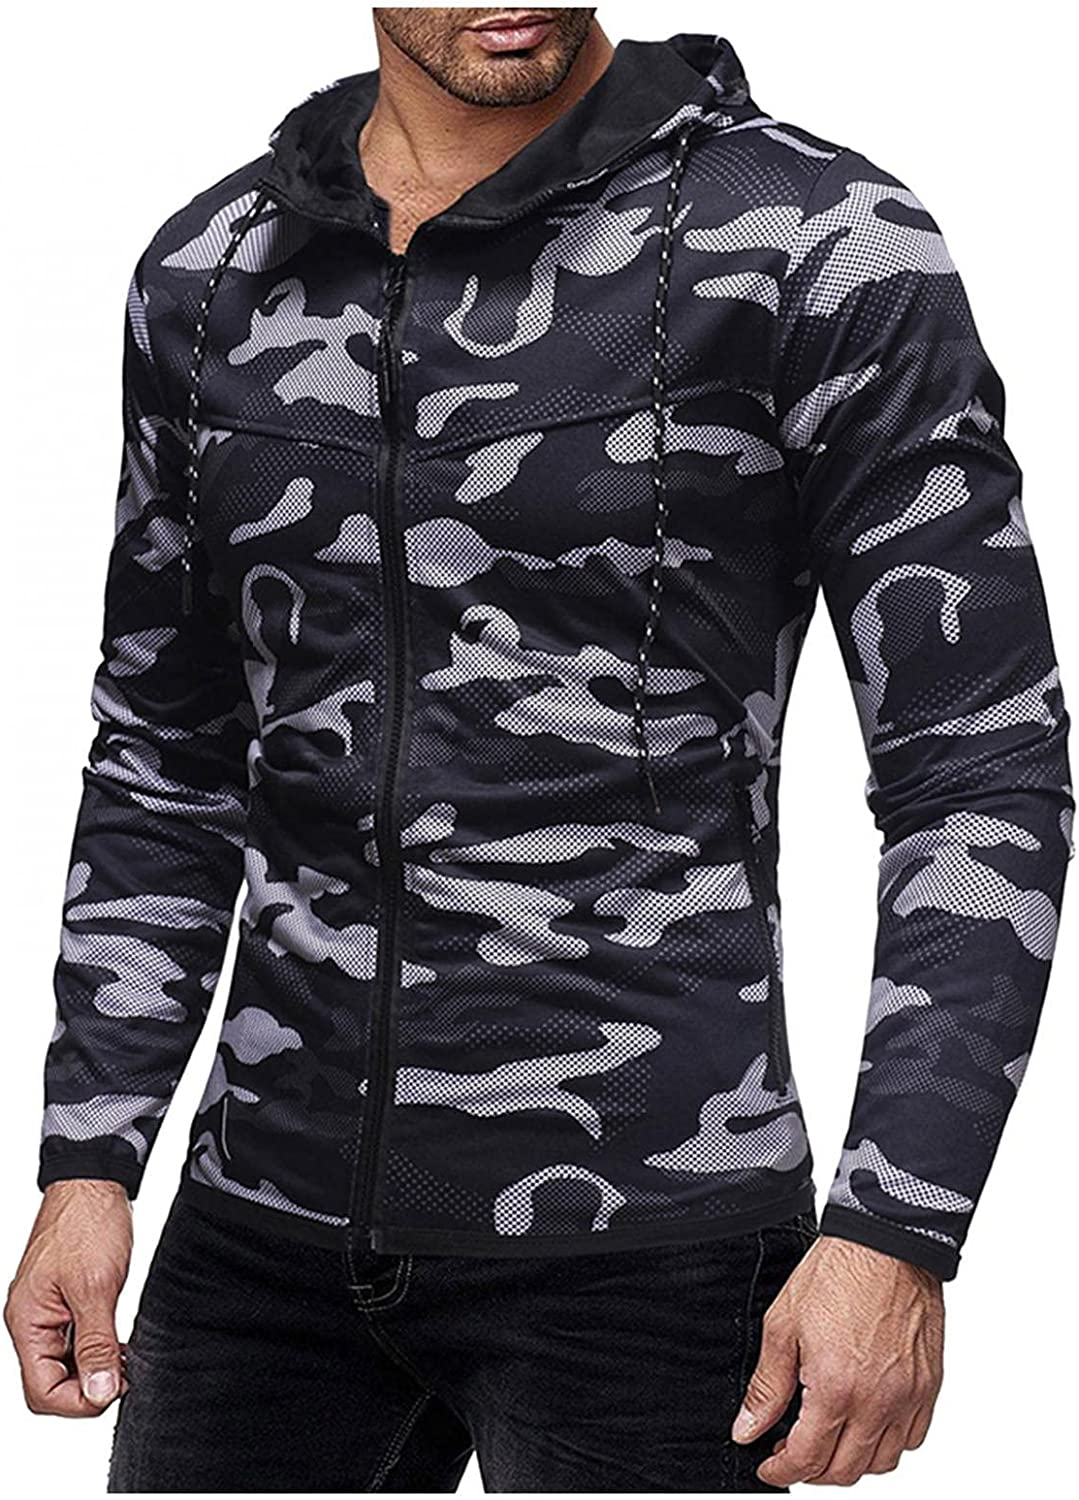 Aayomet Hoodies Sweatshirts for Men Camouflage Tops Long Sleeve Workout Athletic Hooded Pullover Blouses Sweaters Coat